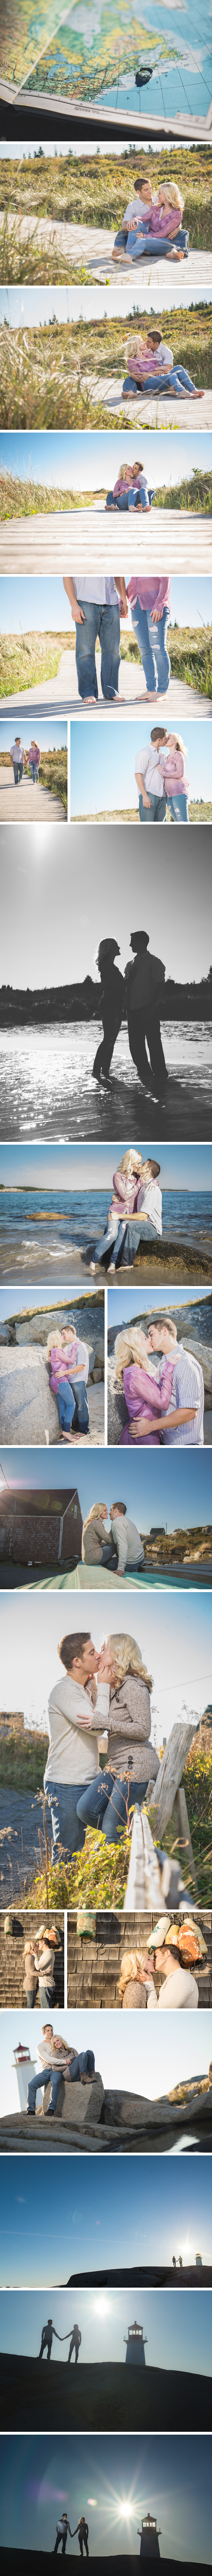 halifax wedding photographer peggys cove